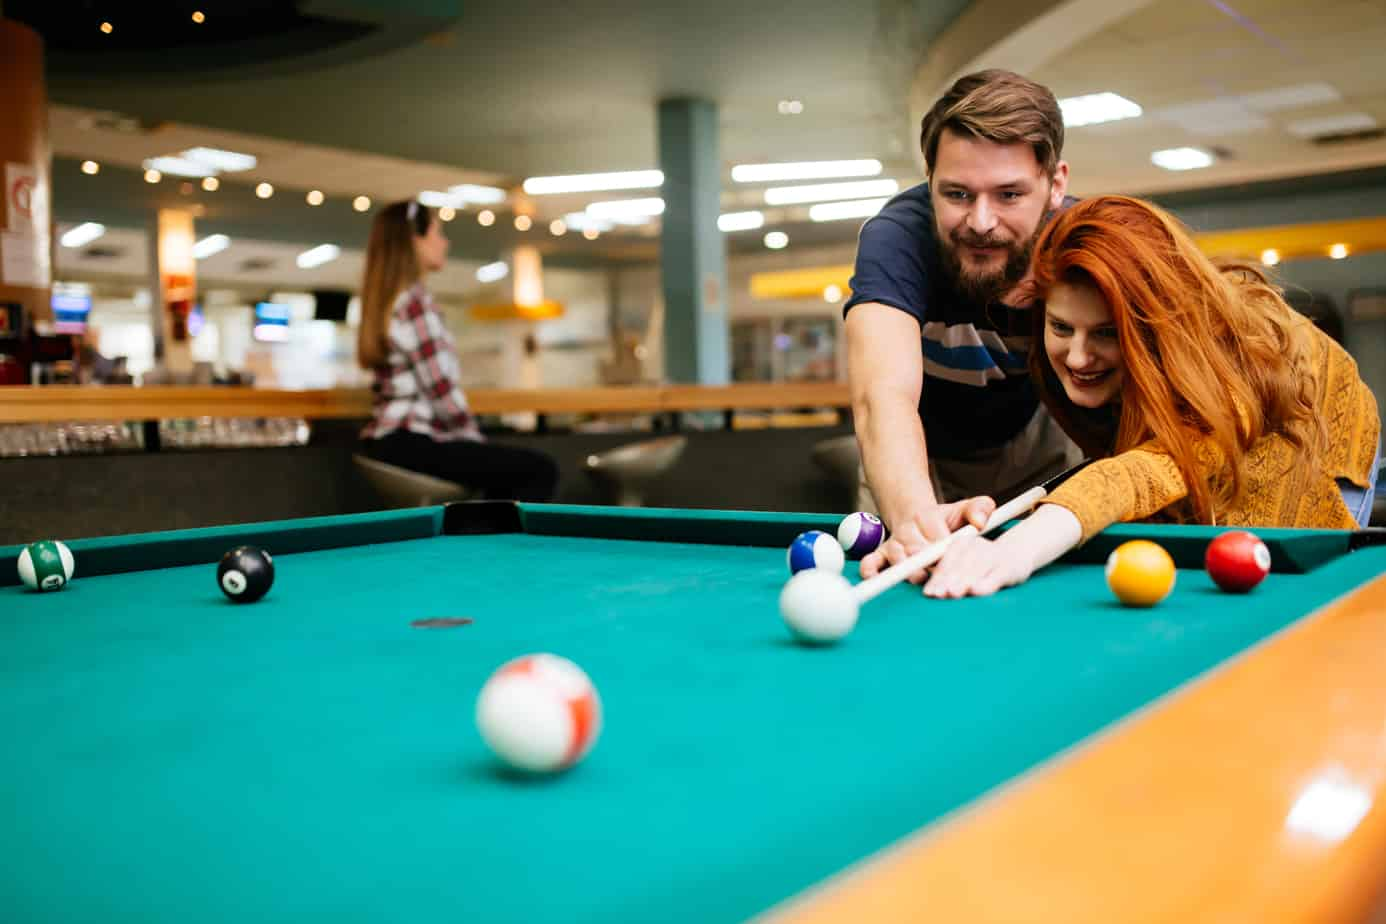 Couple playing billiards on pool table